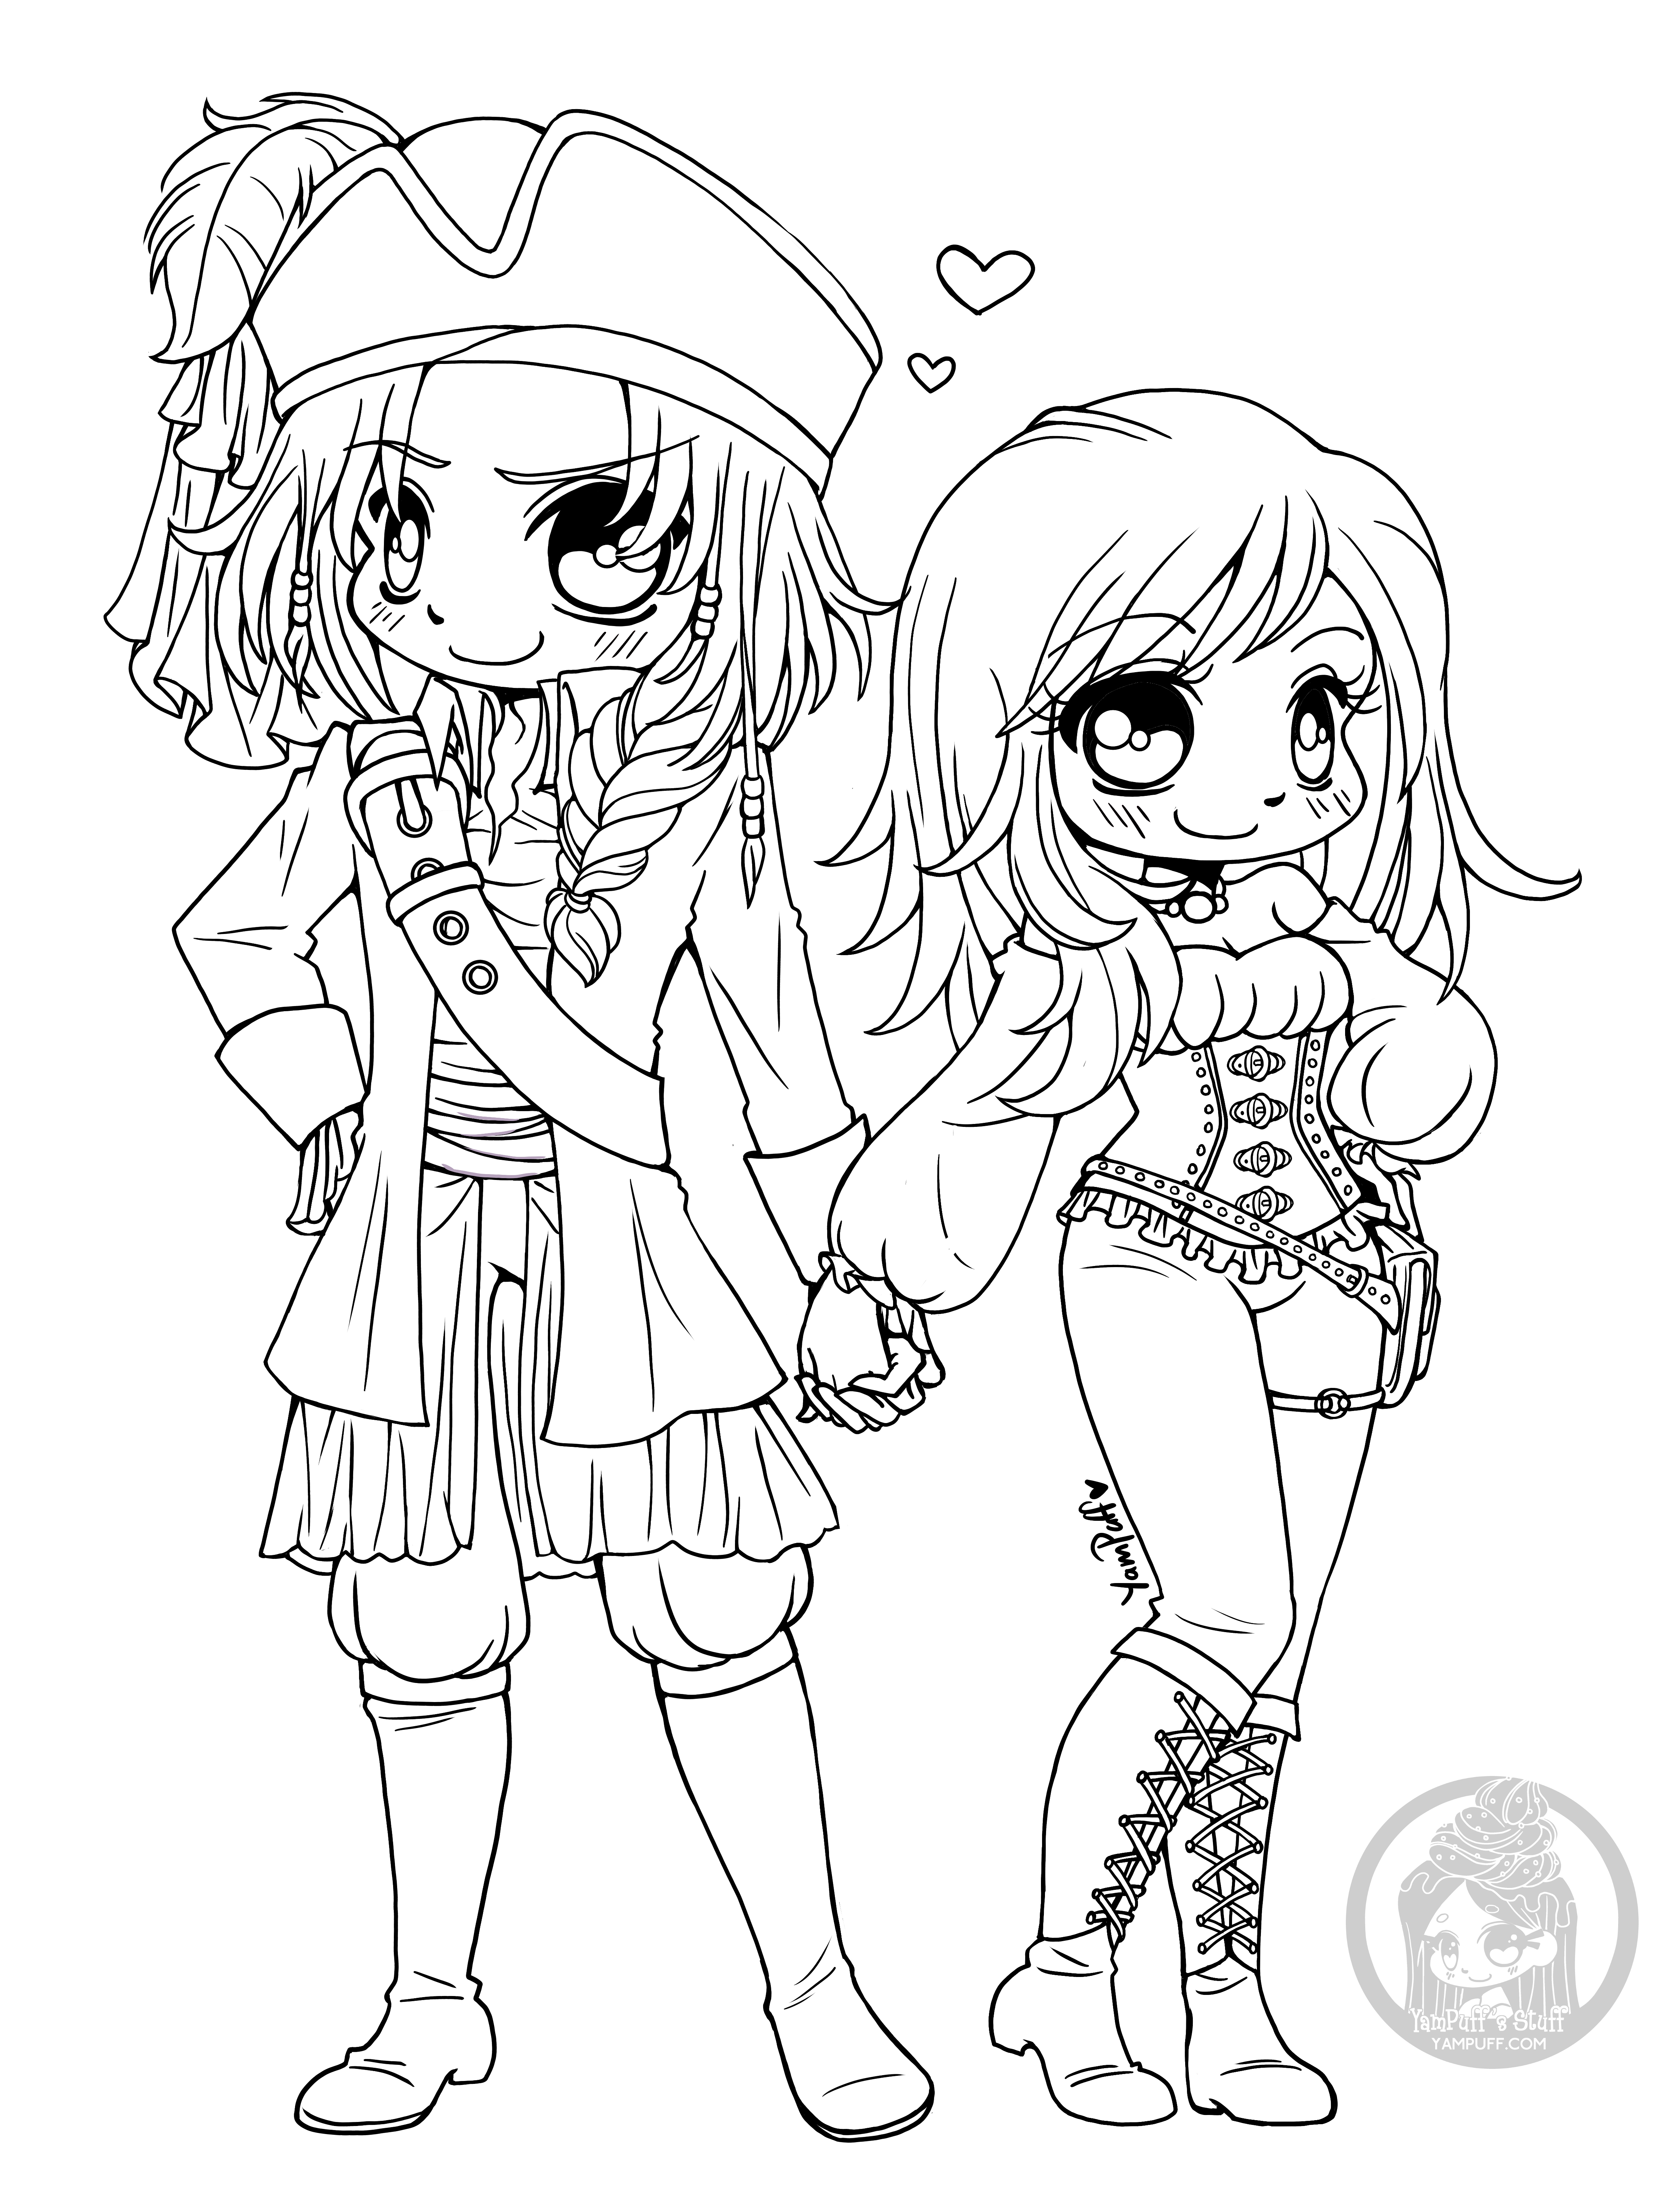 chibi couple coloring pages cute anime couple coloring pages at getdrawings free pages couple coloring chibi